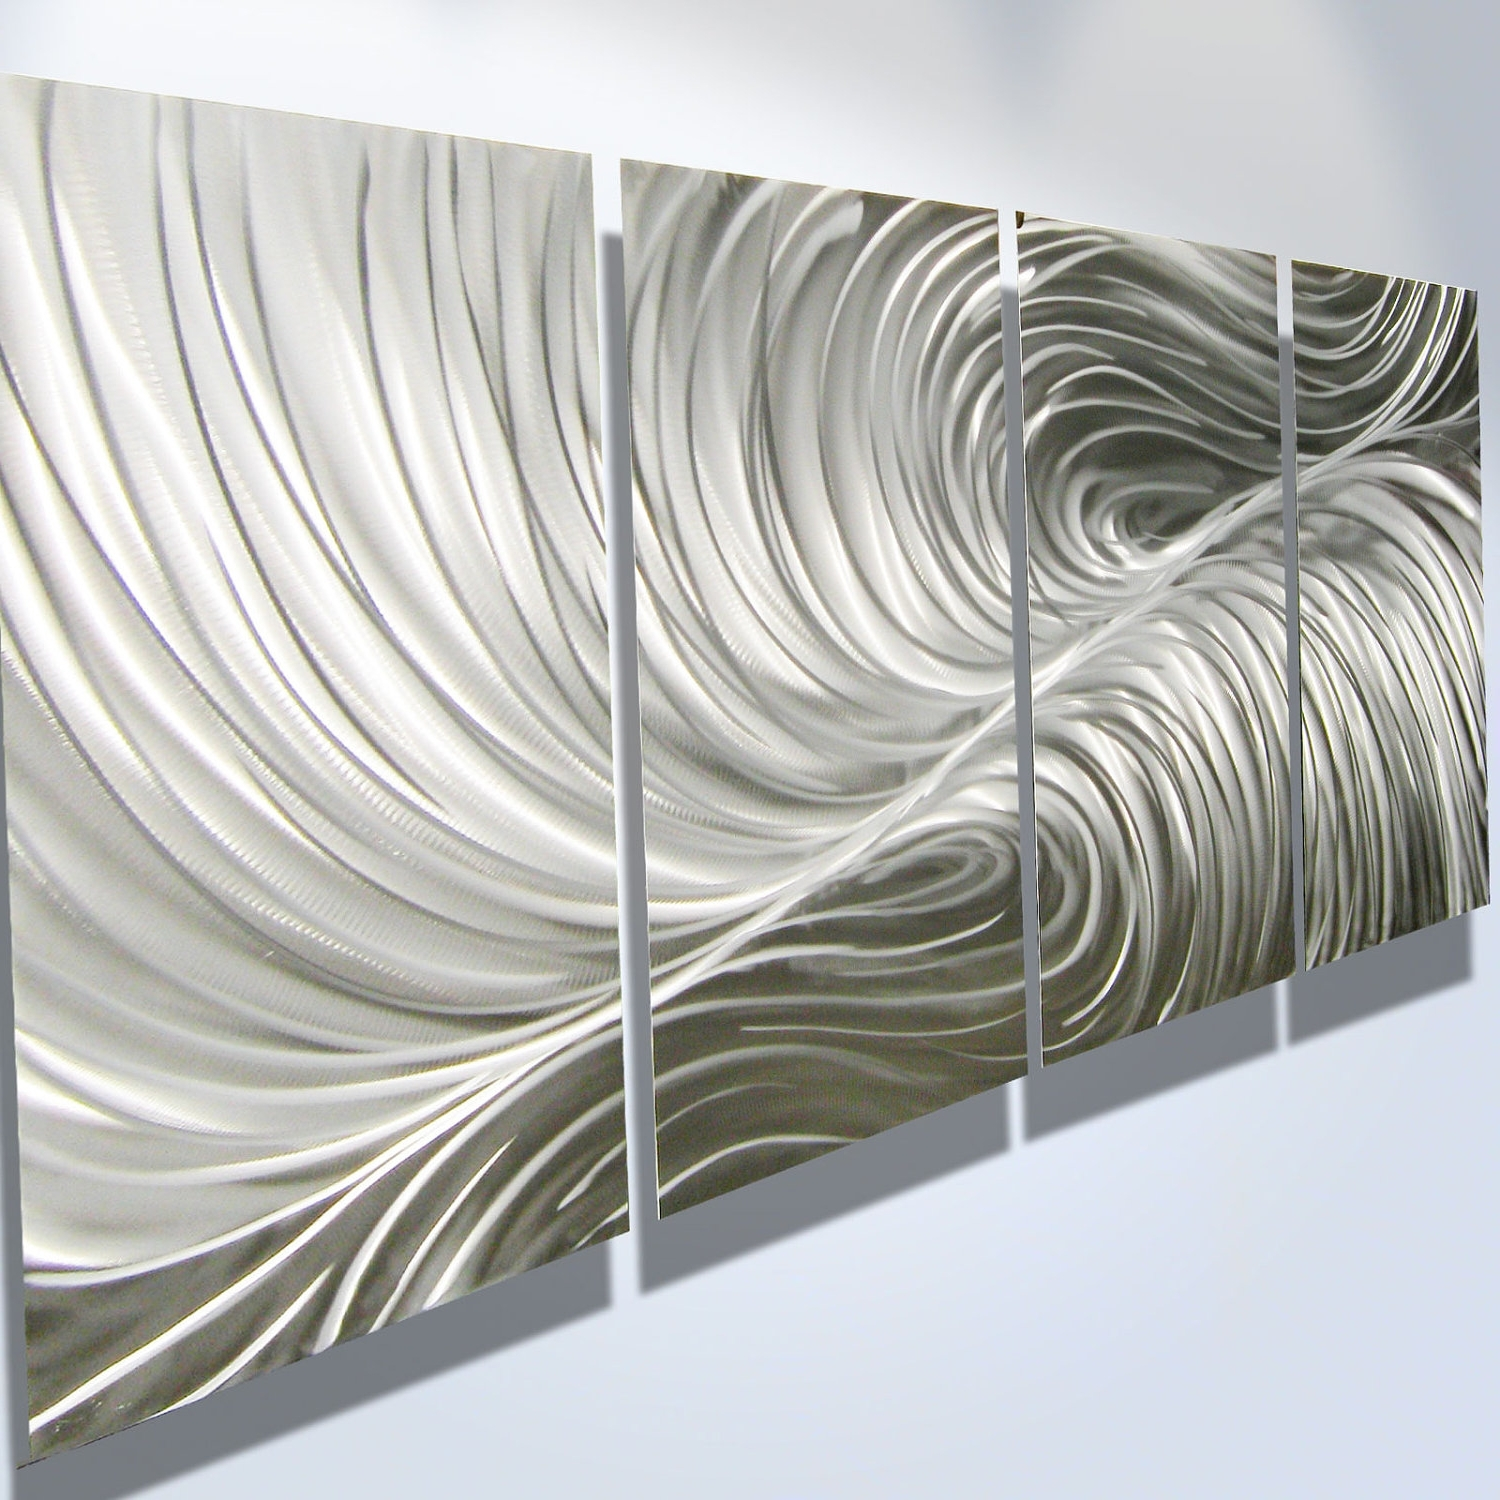 Most Popular Abstract Aluminium Wall Art In Metal Wall Art Decor Abstract Aluminum Contemporary Modern (View 10 of 15)